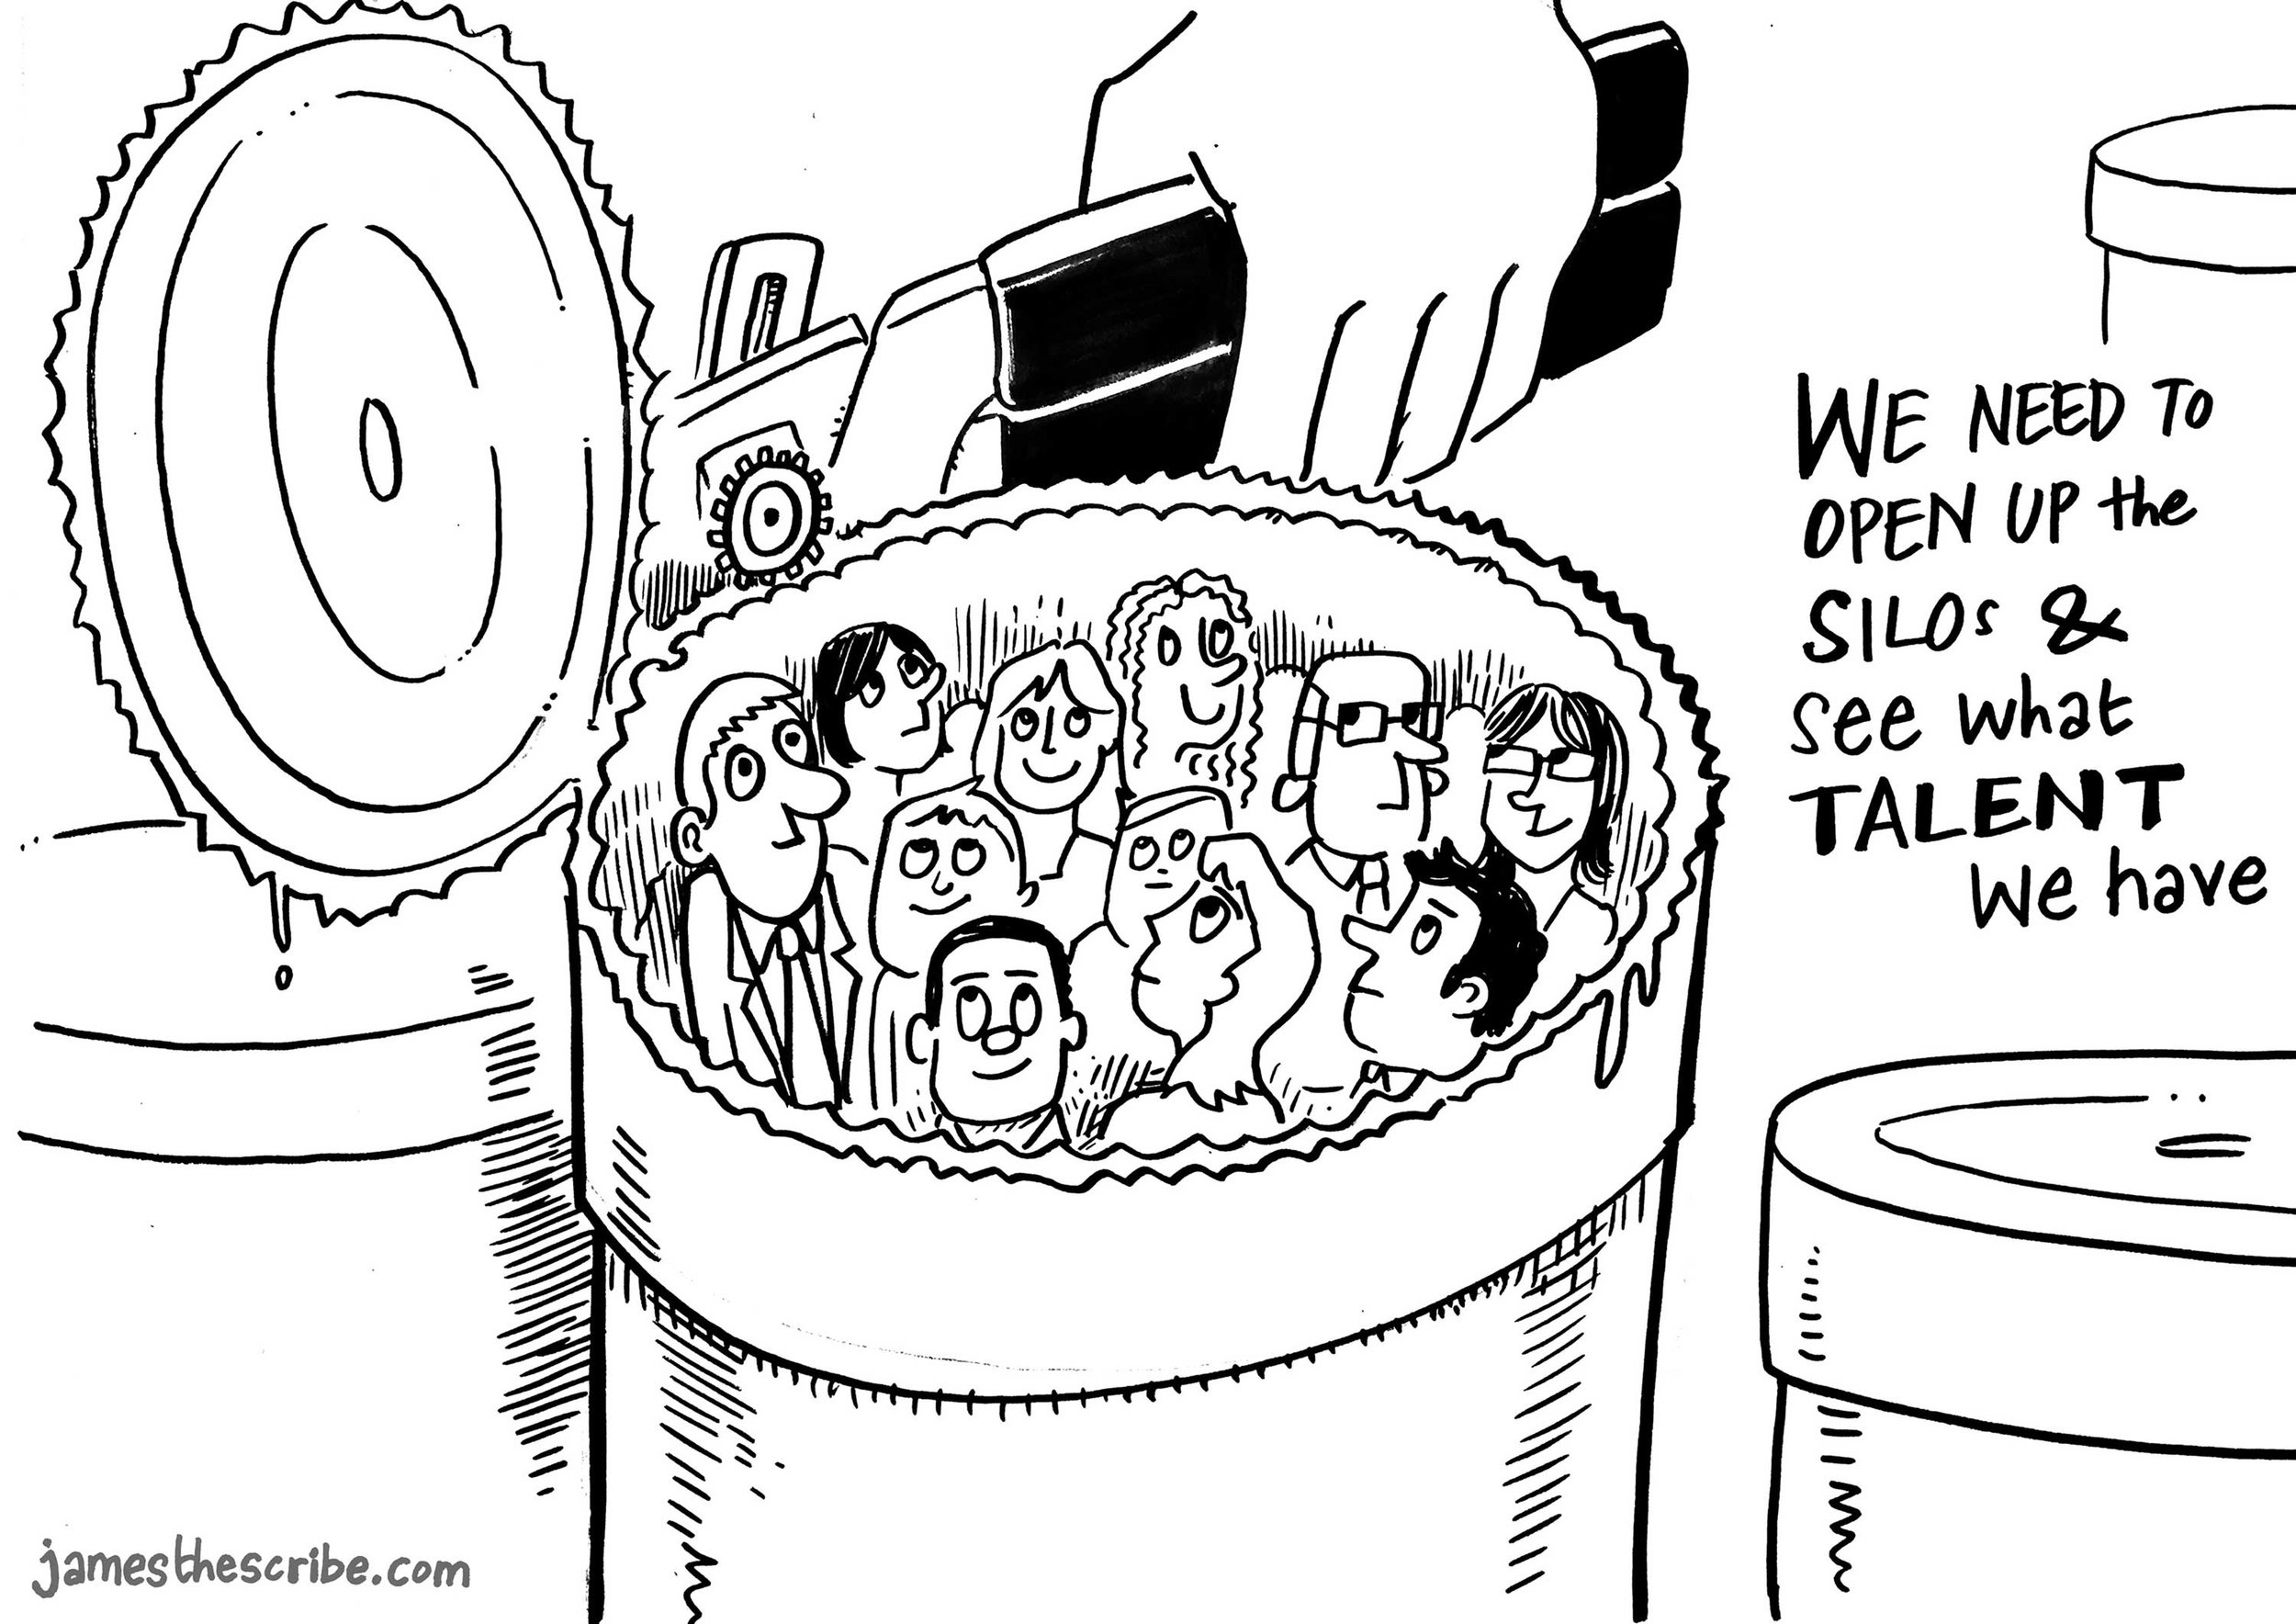 open-up-silos-to-see-talent.jpg